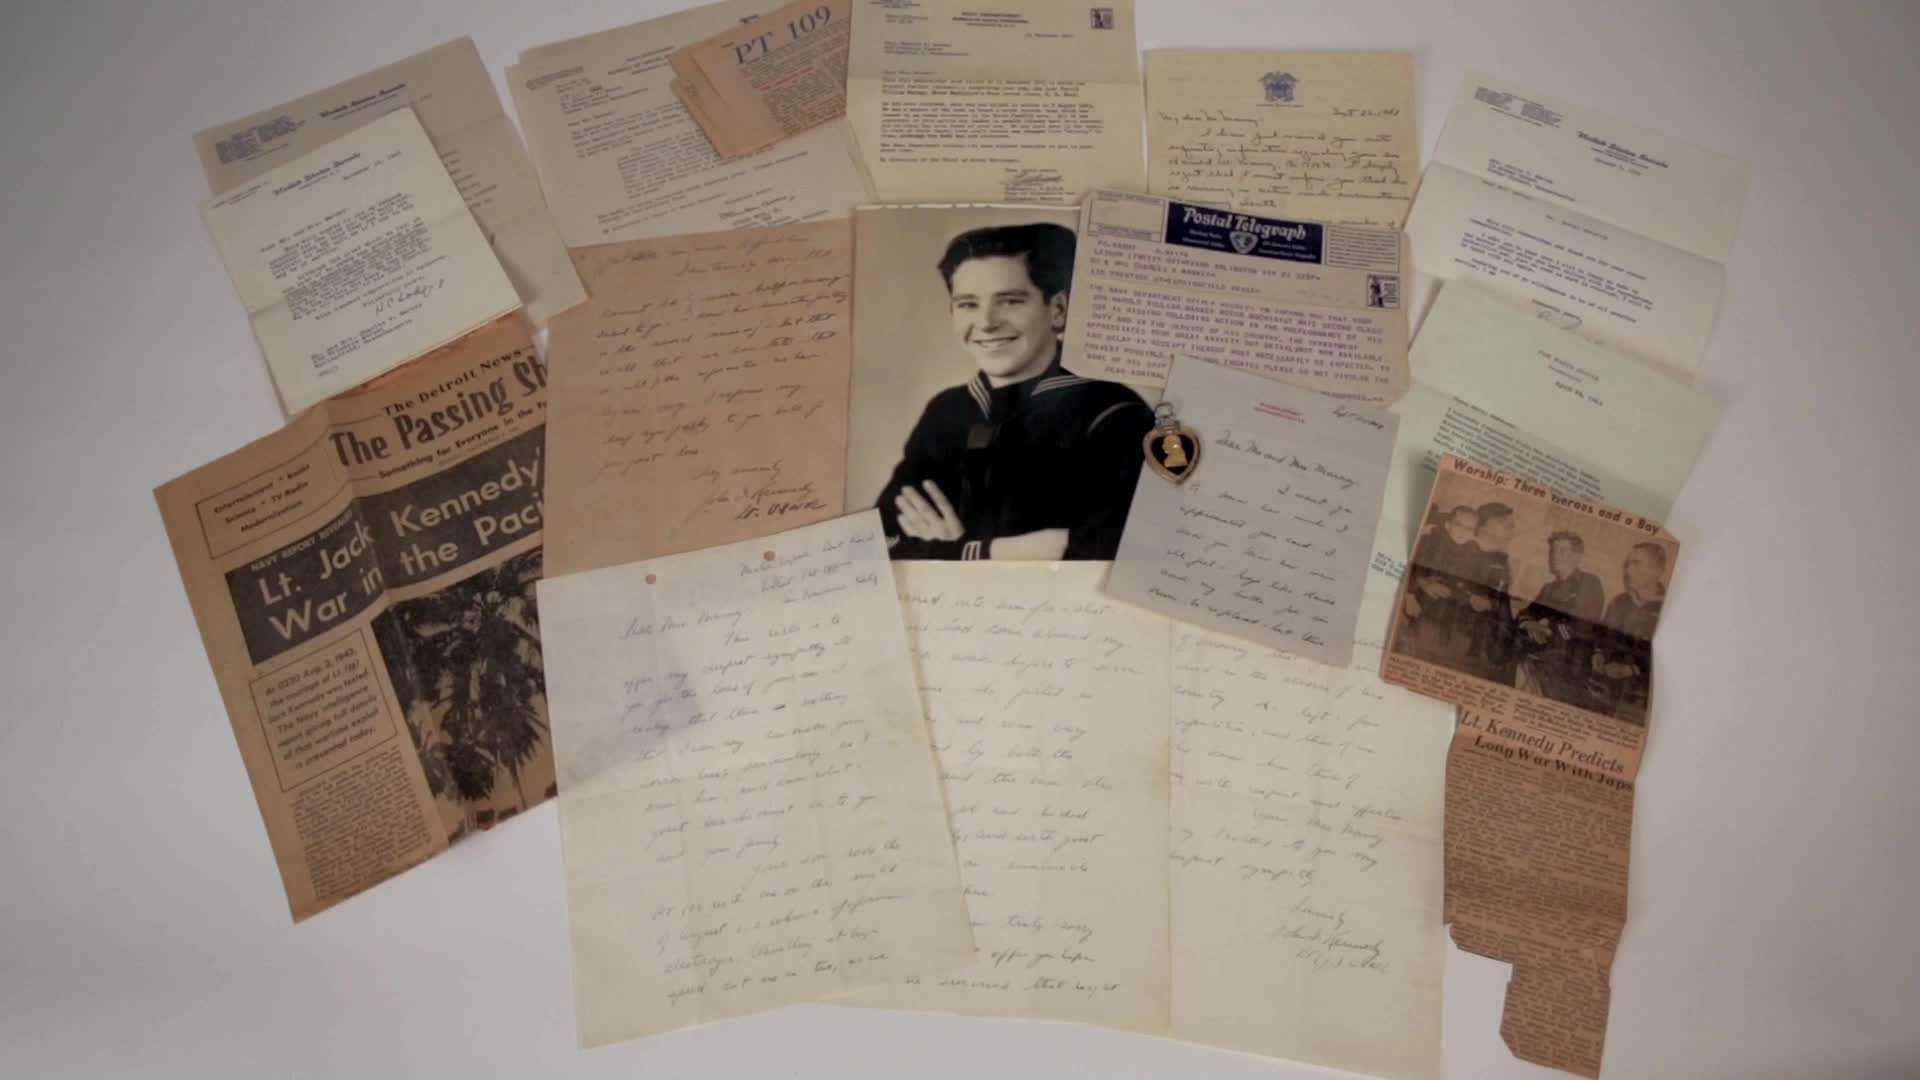 A collection of letters John F. Kennedy sent to the family of a lost PT-109 crewmate have sold for $200,000 at an auction.